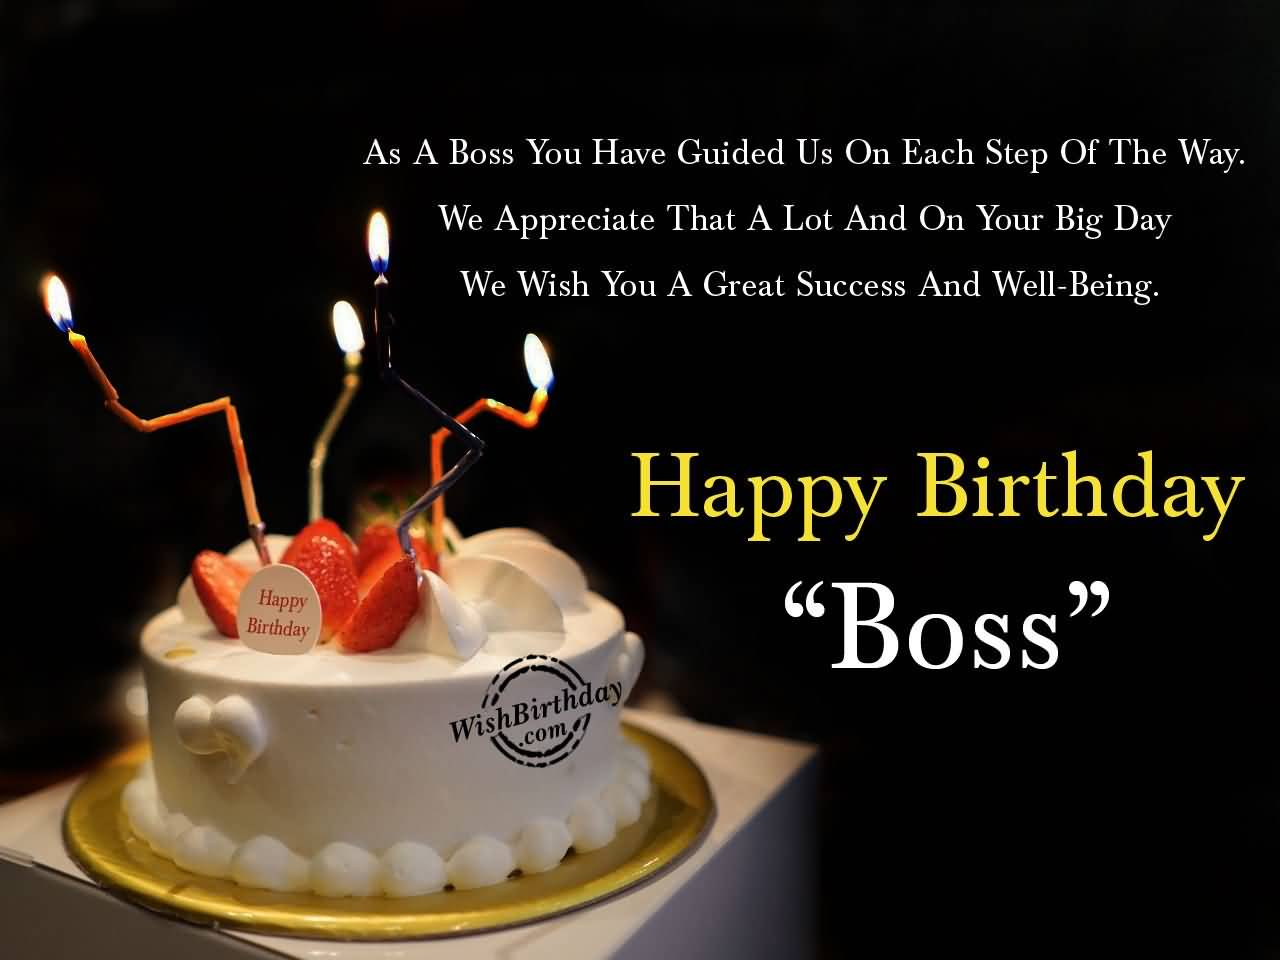 happy birthday boss funny ; As-A-Boss-You-Have-Guided-Us-On-Each-Step-Of-The-Way-Happy-Birthday-Boss